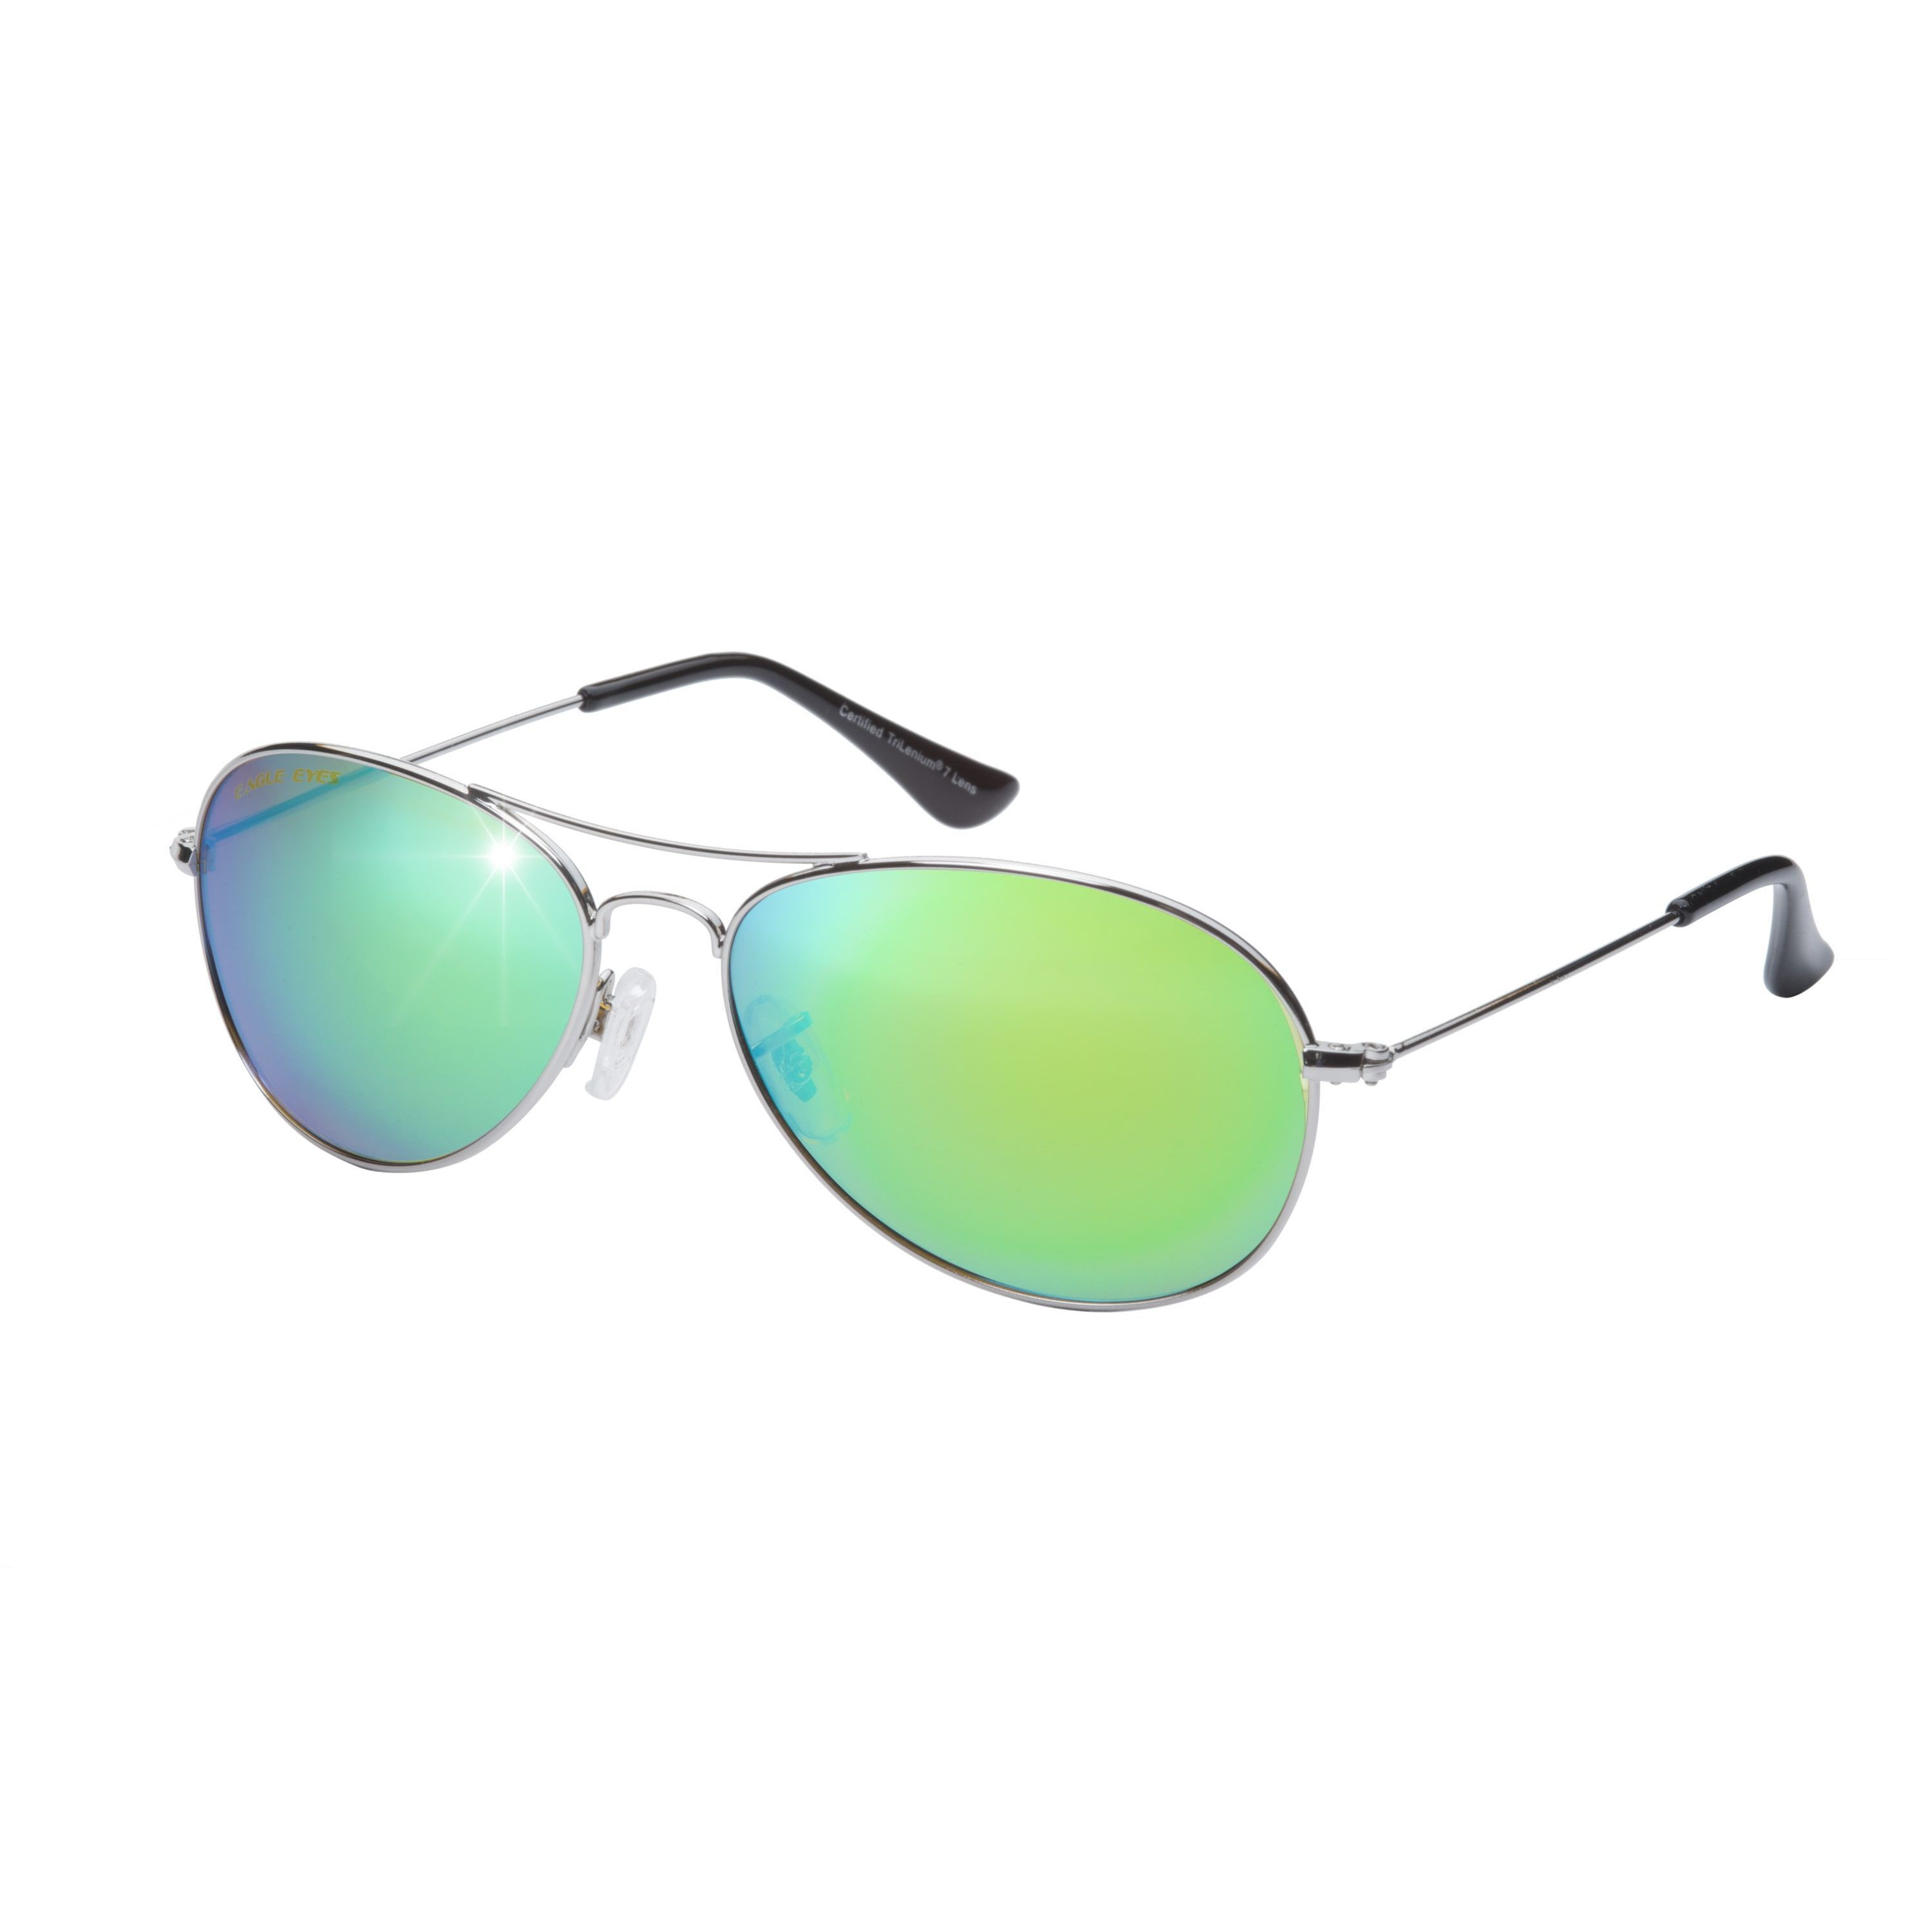 835f3da388 Eagle Eyes Celebrity Unisex Aviator Sunglasses